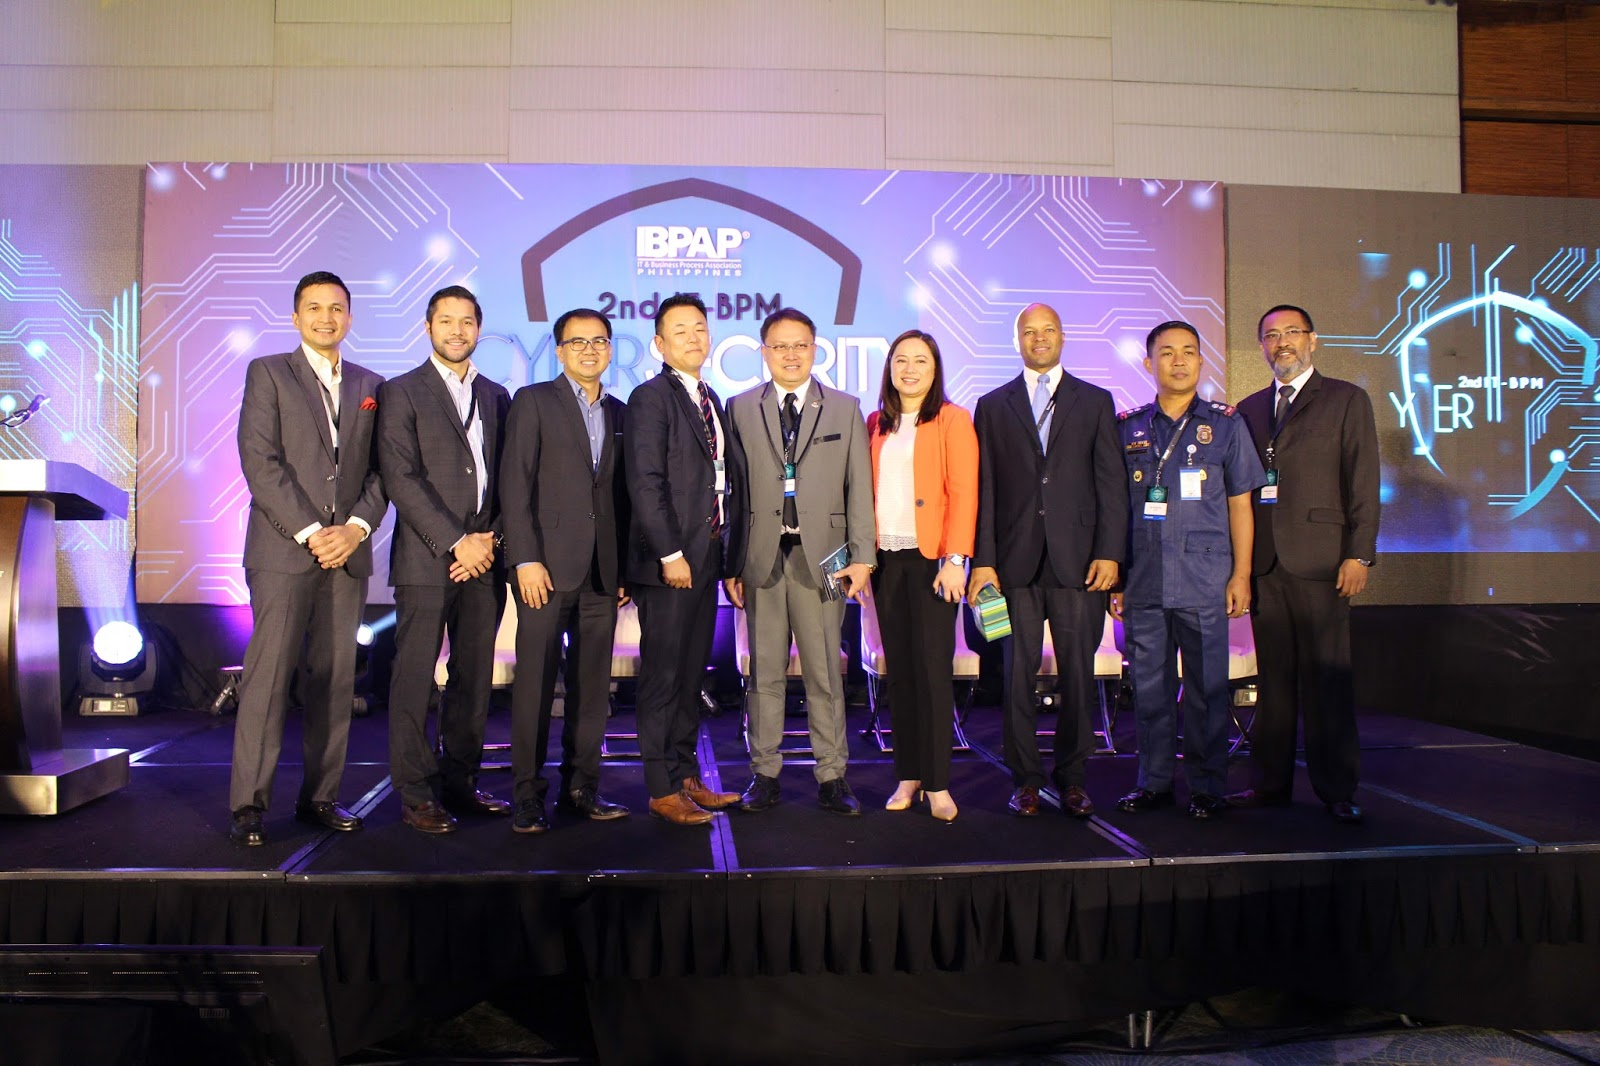 ePLDT, PLDT Enterprise lead discussion on business resiliency at the 2nd IBPAP Cyber Security Summit 2017